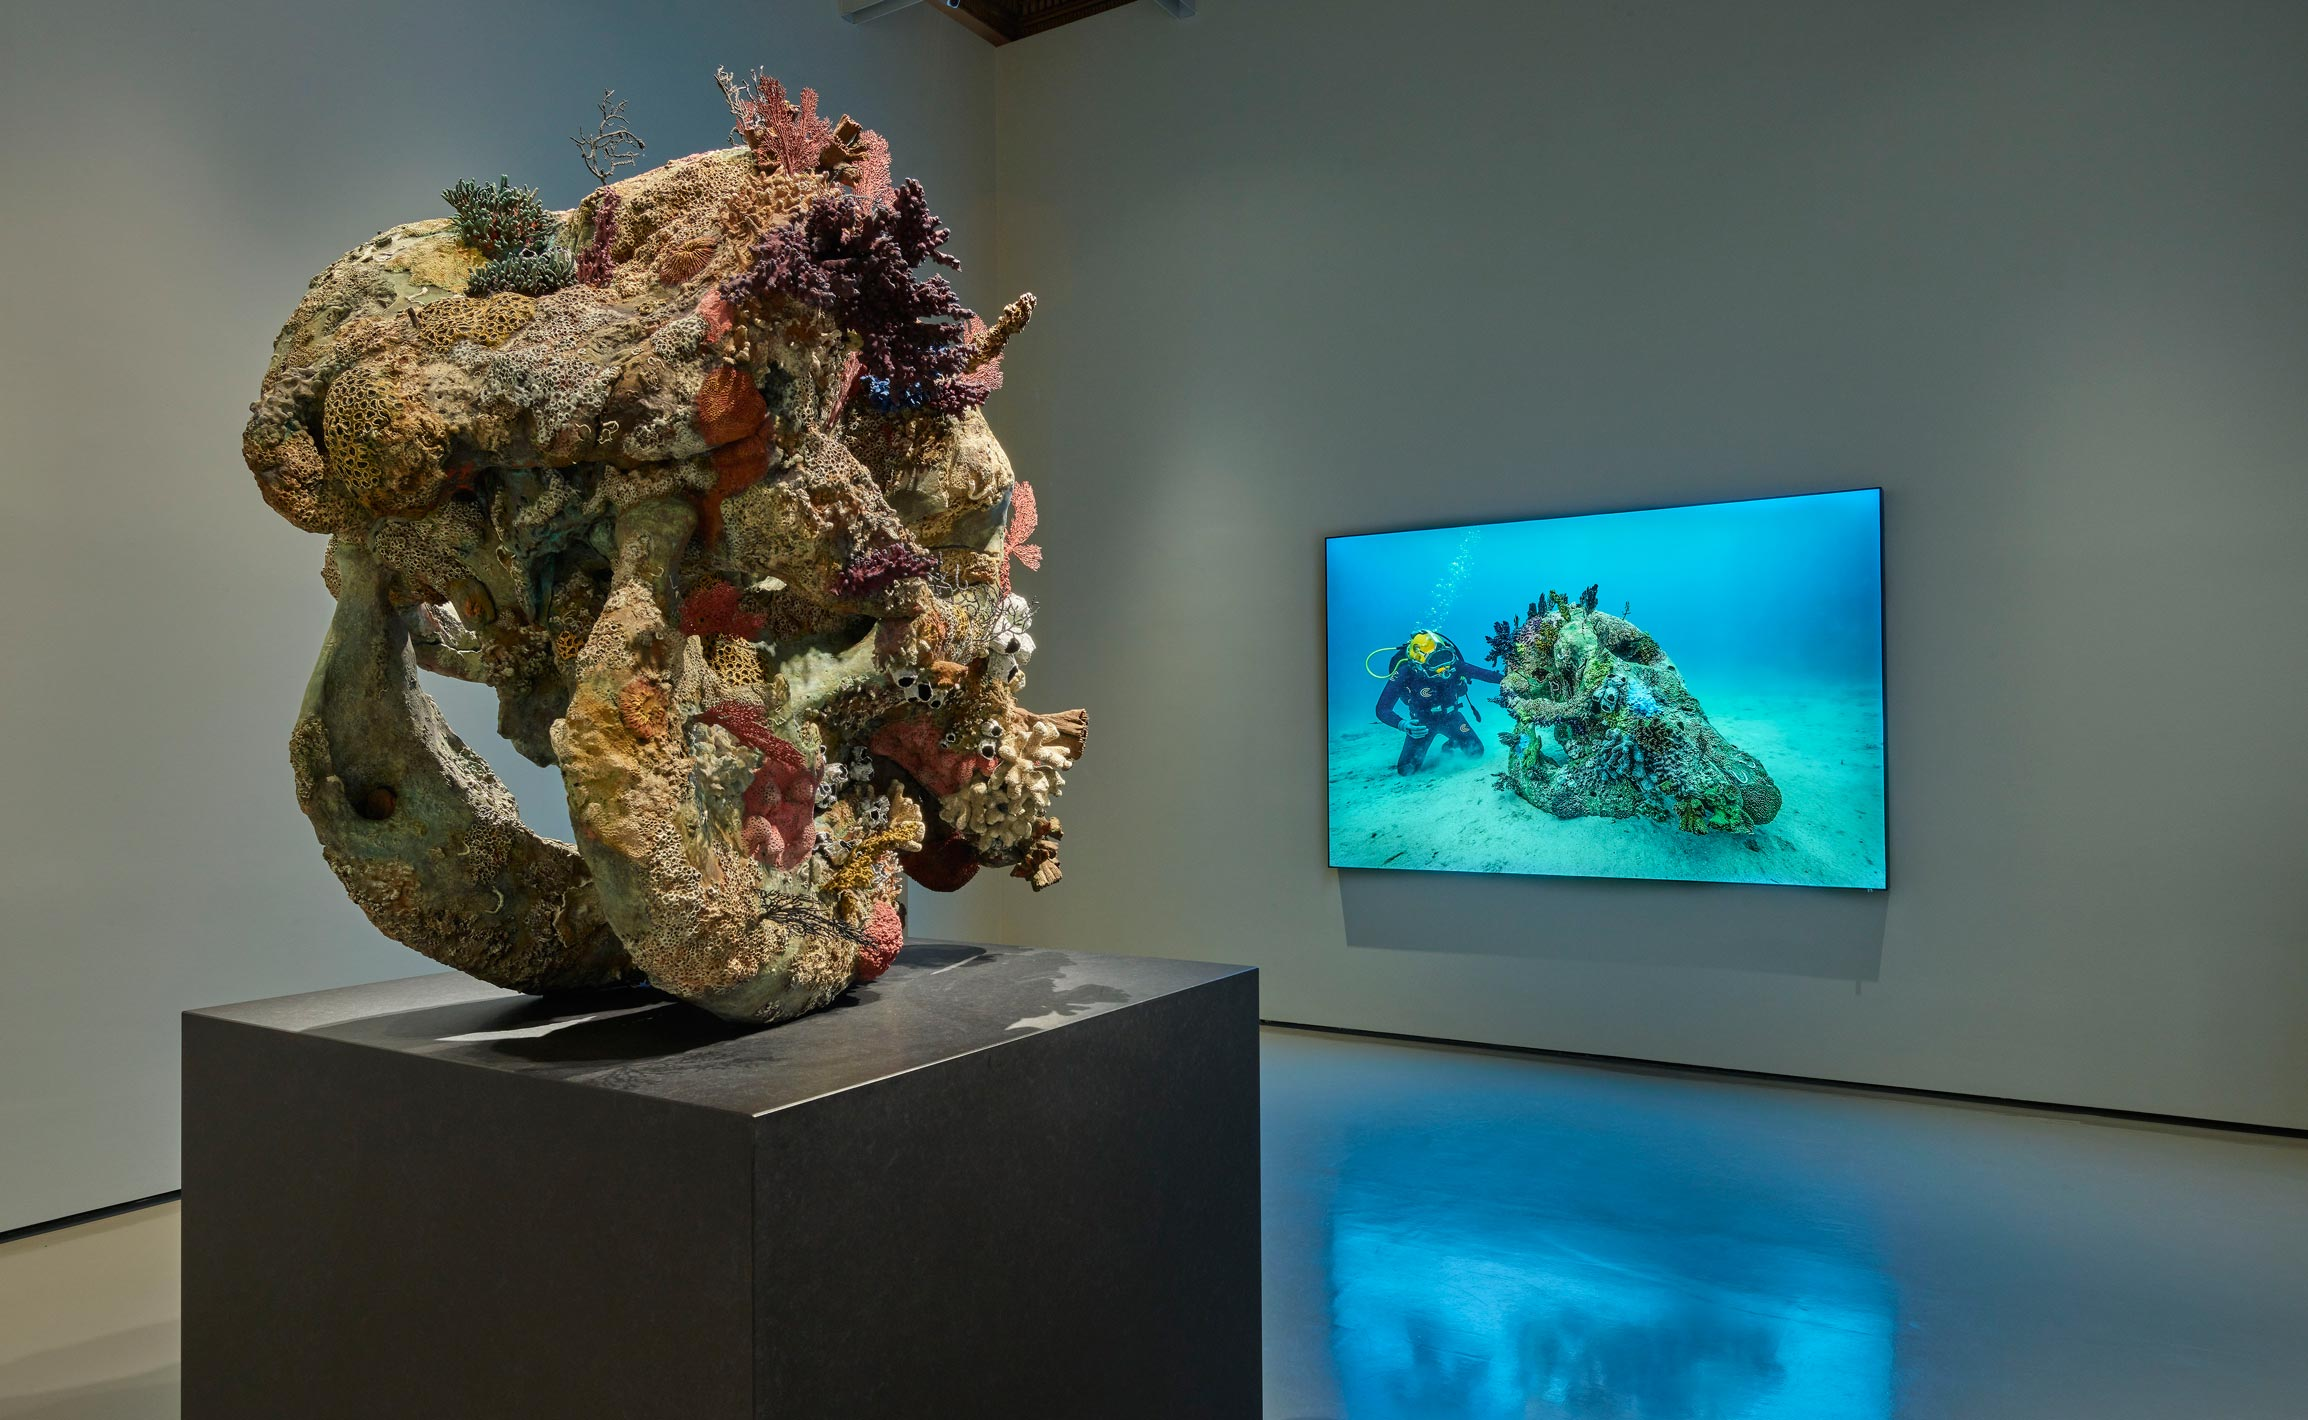 Room 5: (left to right) Damien Hirst, Skull of a Cyclops, Skull of a Cyclops Examined by a Diver (photography Christoph Gerigk). Photographed by Prudence Cuming Associates © Damien Hirst and Science Ltd. All rights reserved, DACS/SIAE 2017